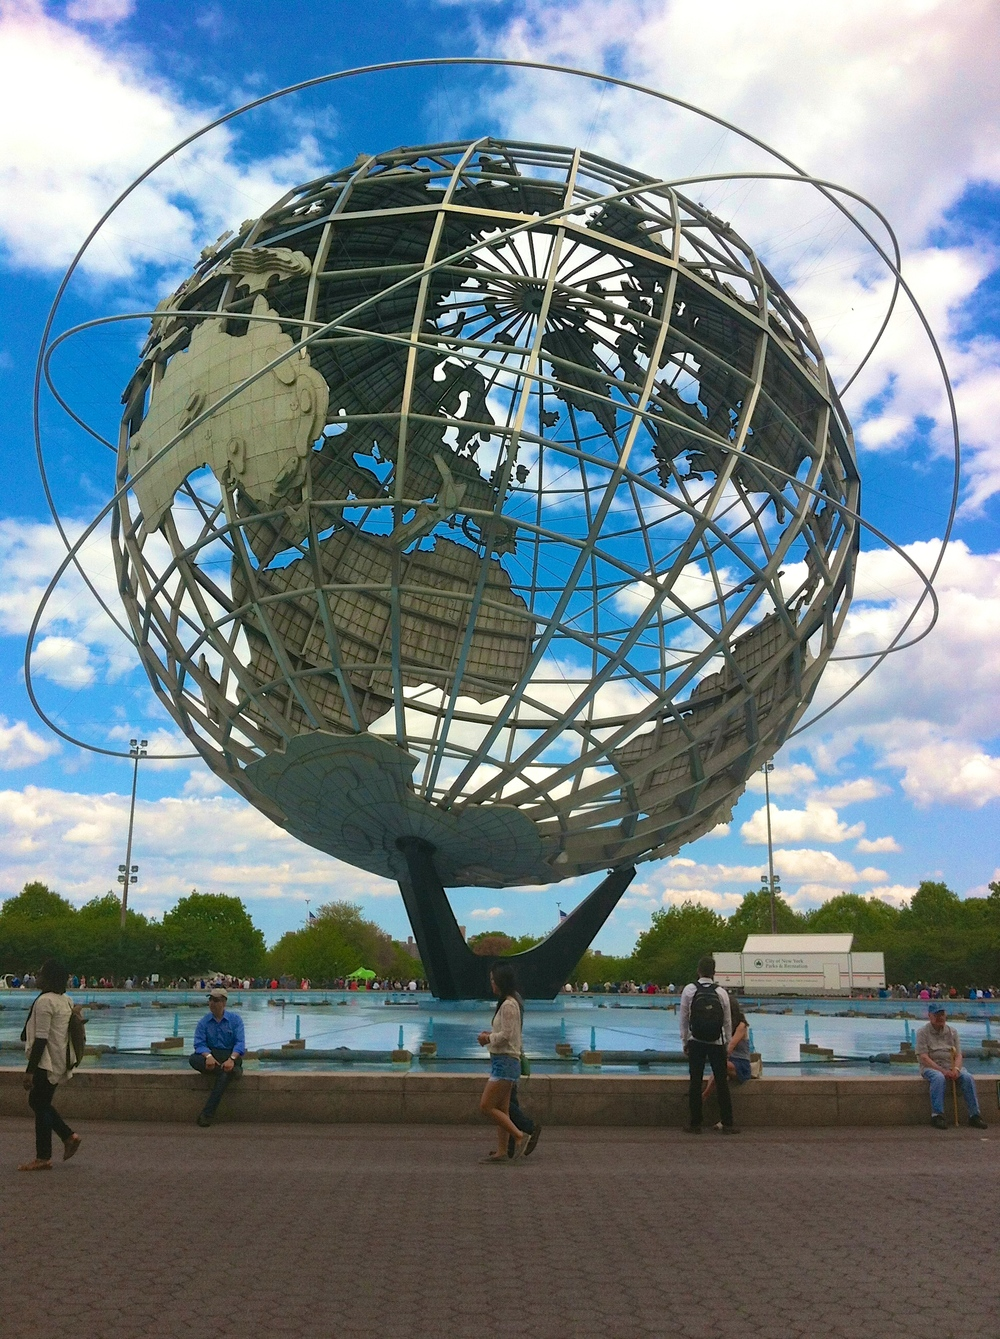 Unisphere from 1964 World's Fair, Flushing Meadows-Corona Park, Queens, NY [Chris Andersson]